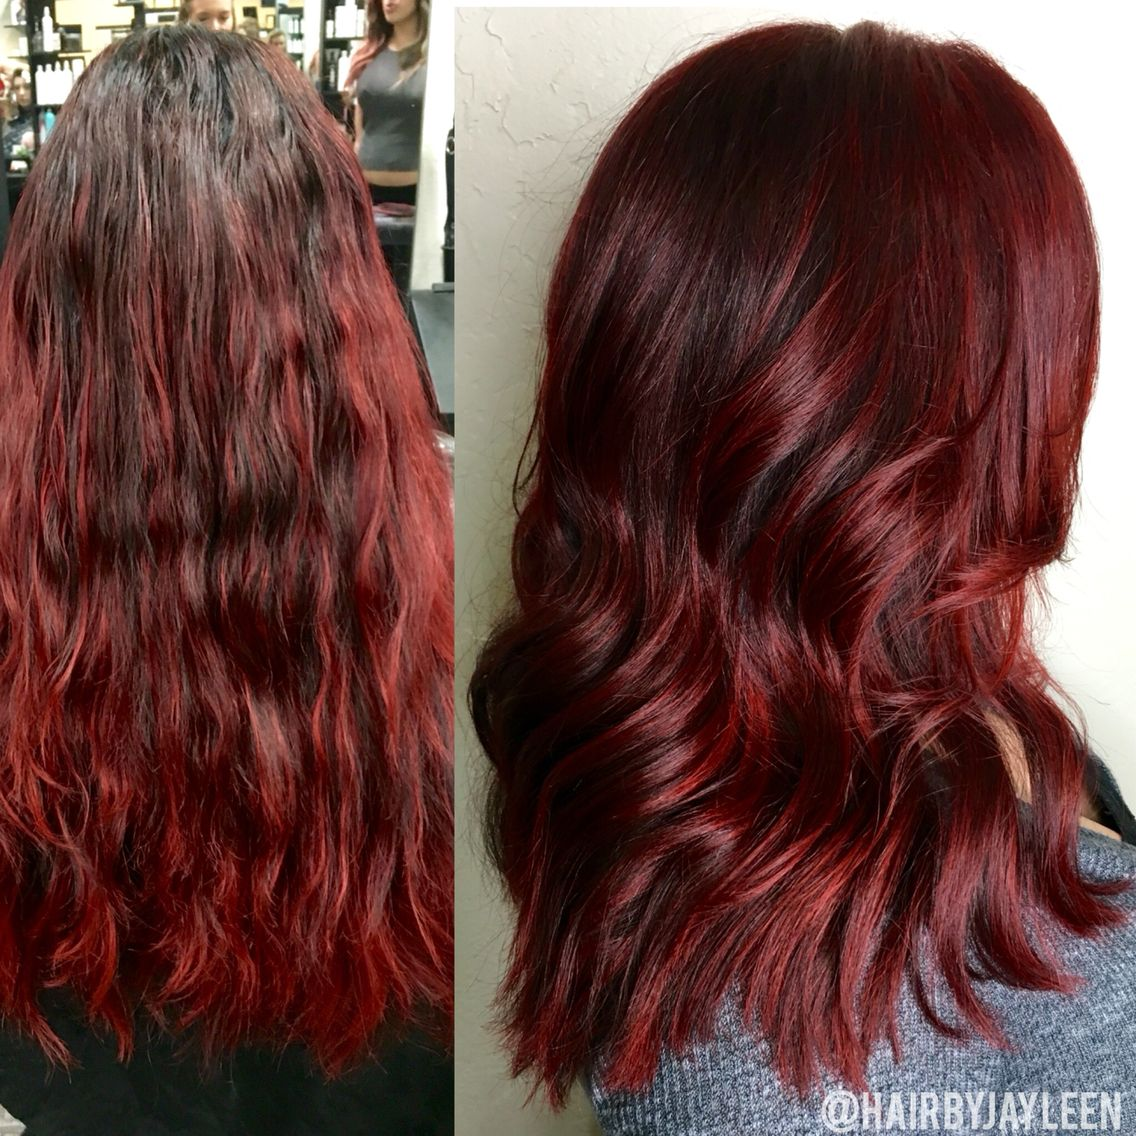 Groovy Red Hair Red Highlights Red Lob Vibrant Red Hair Hairstyles Short Hairstyles For Black Women Fulllsitofus